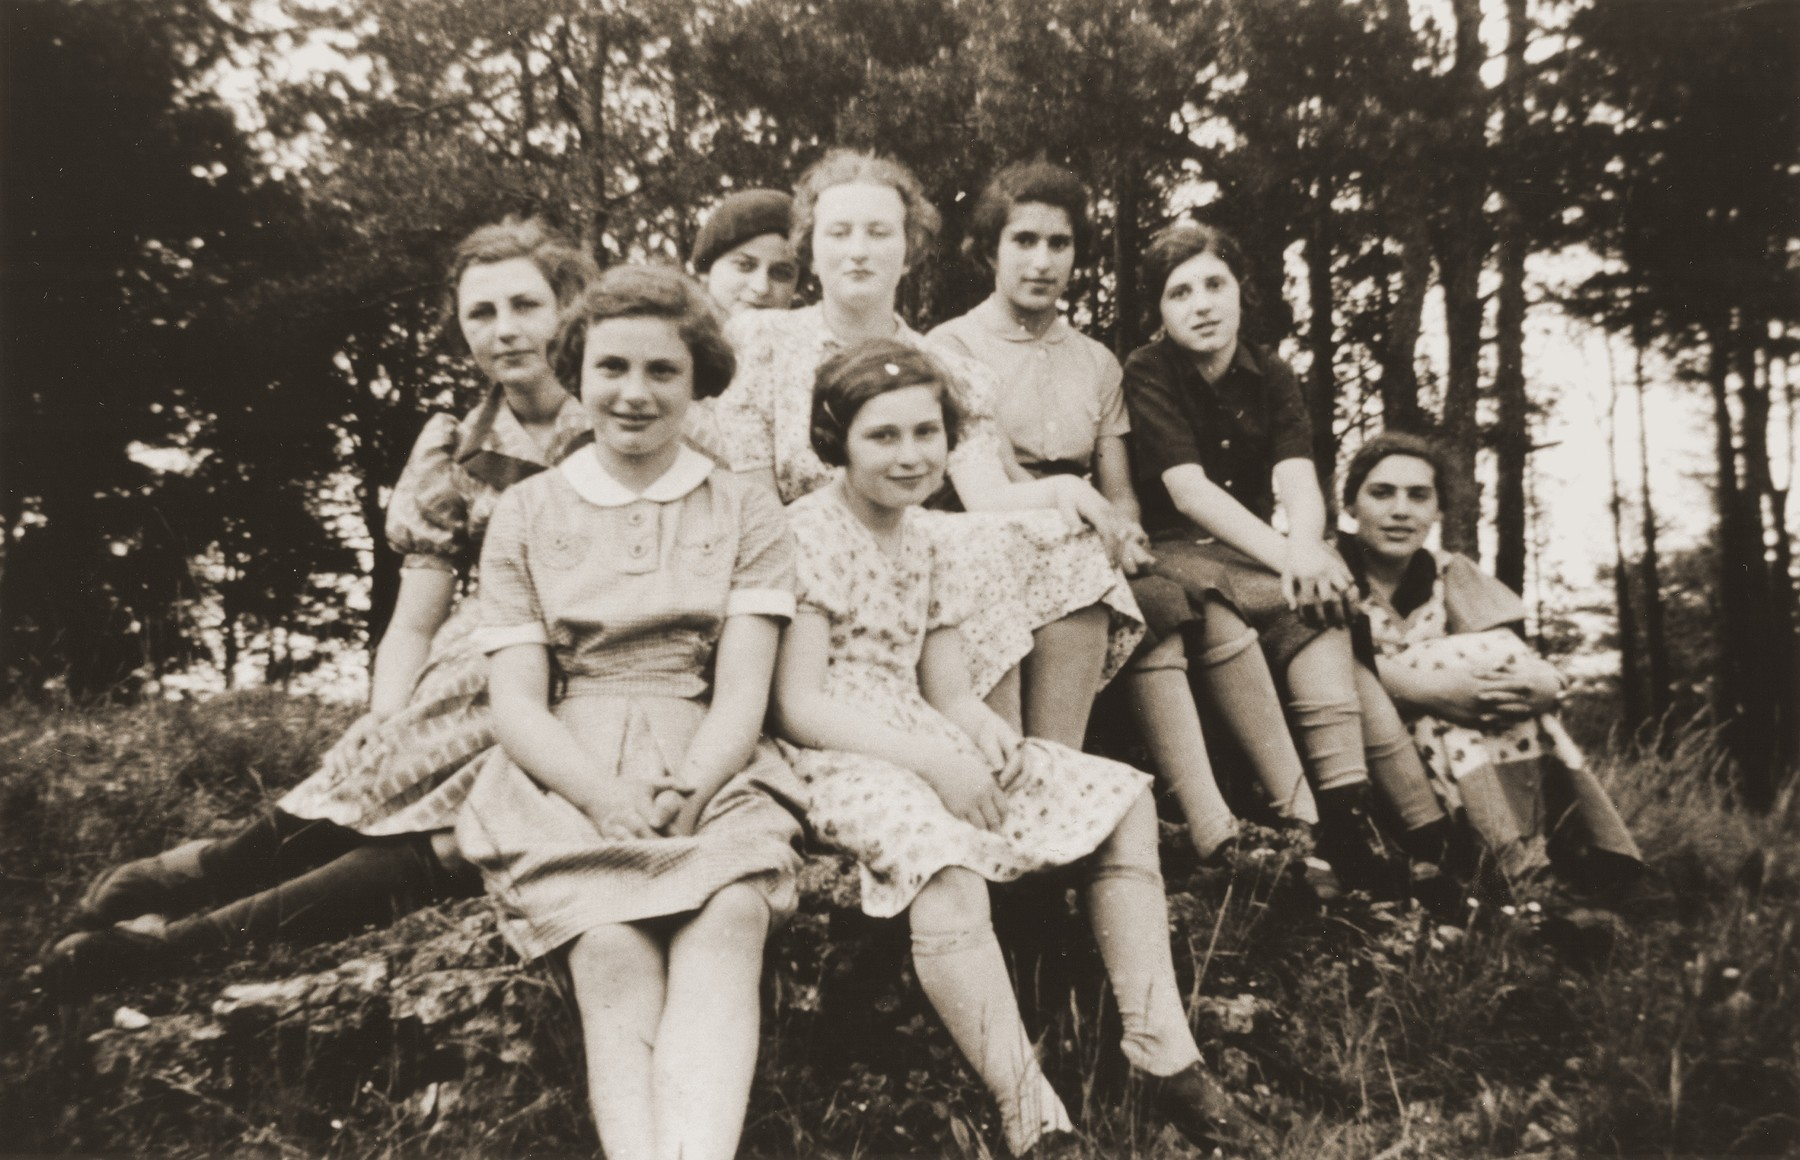 Members of the Ezra youth group on a summer excursion.    Among those pictured are Ruth Eschwege, Hanna Feuchtwanger, Gerta Halle and Rosi Katz.  Ezra was an orthodox Jewish youth movement affiliated with Agudat Yisrael.  It was headed by Adolf (Avraham) Kohn, who later emigrated to England and became principal of the Jewish Teachers Seminary for Girls in Gateshead.